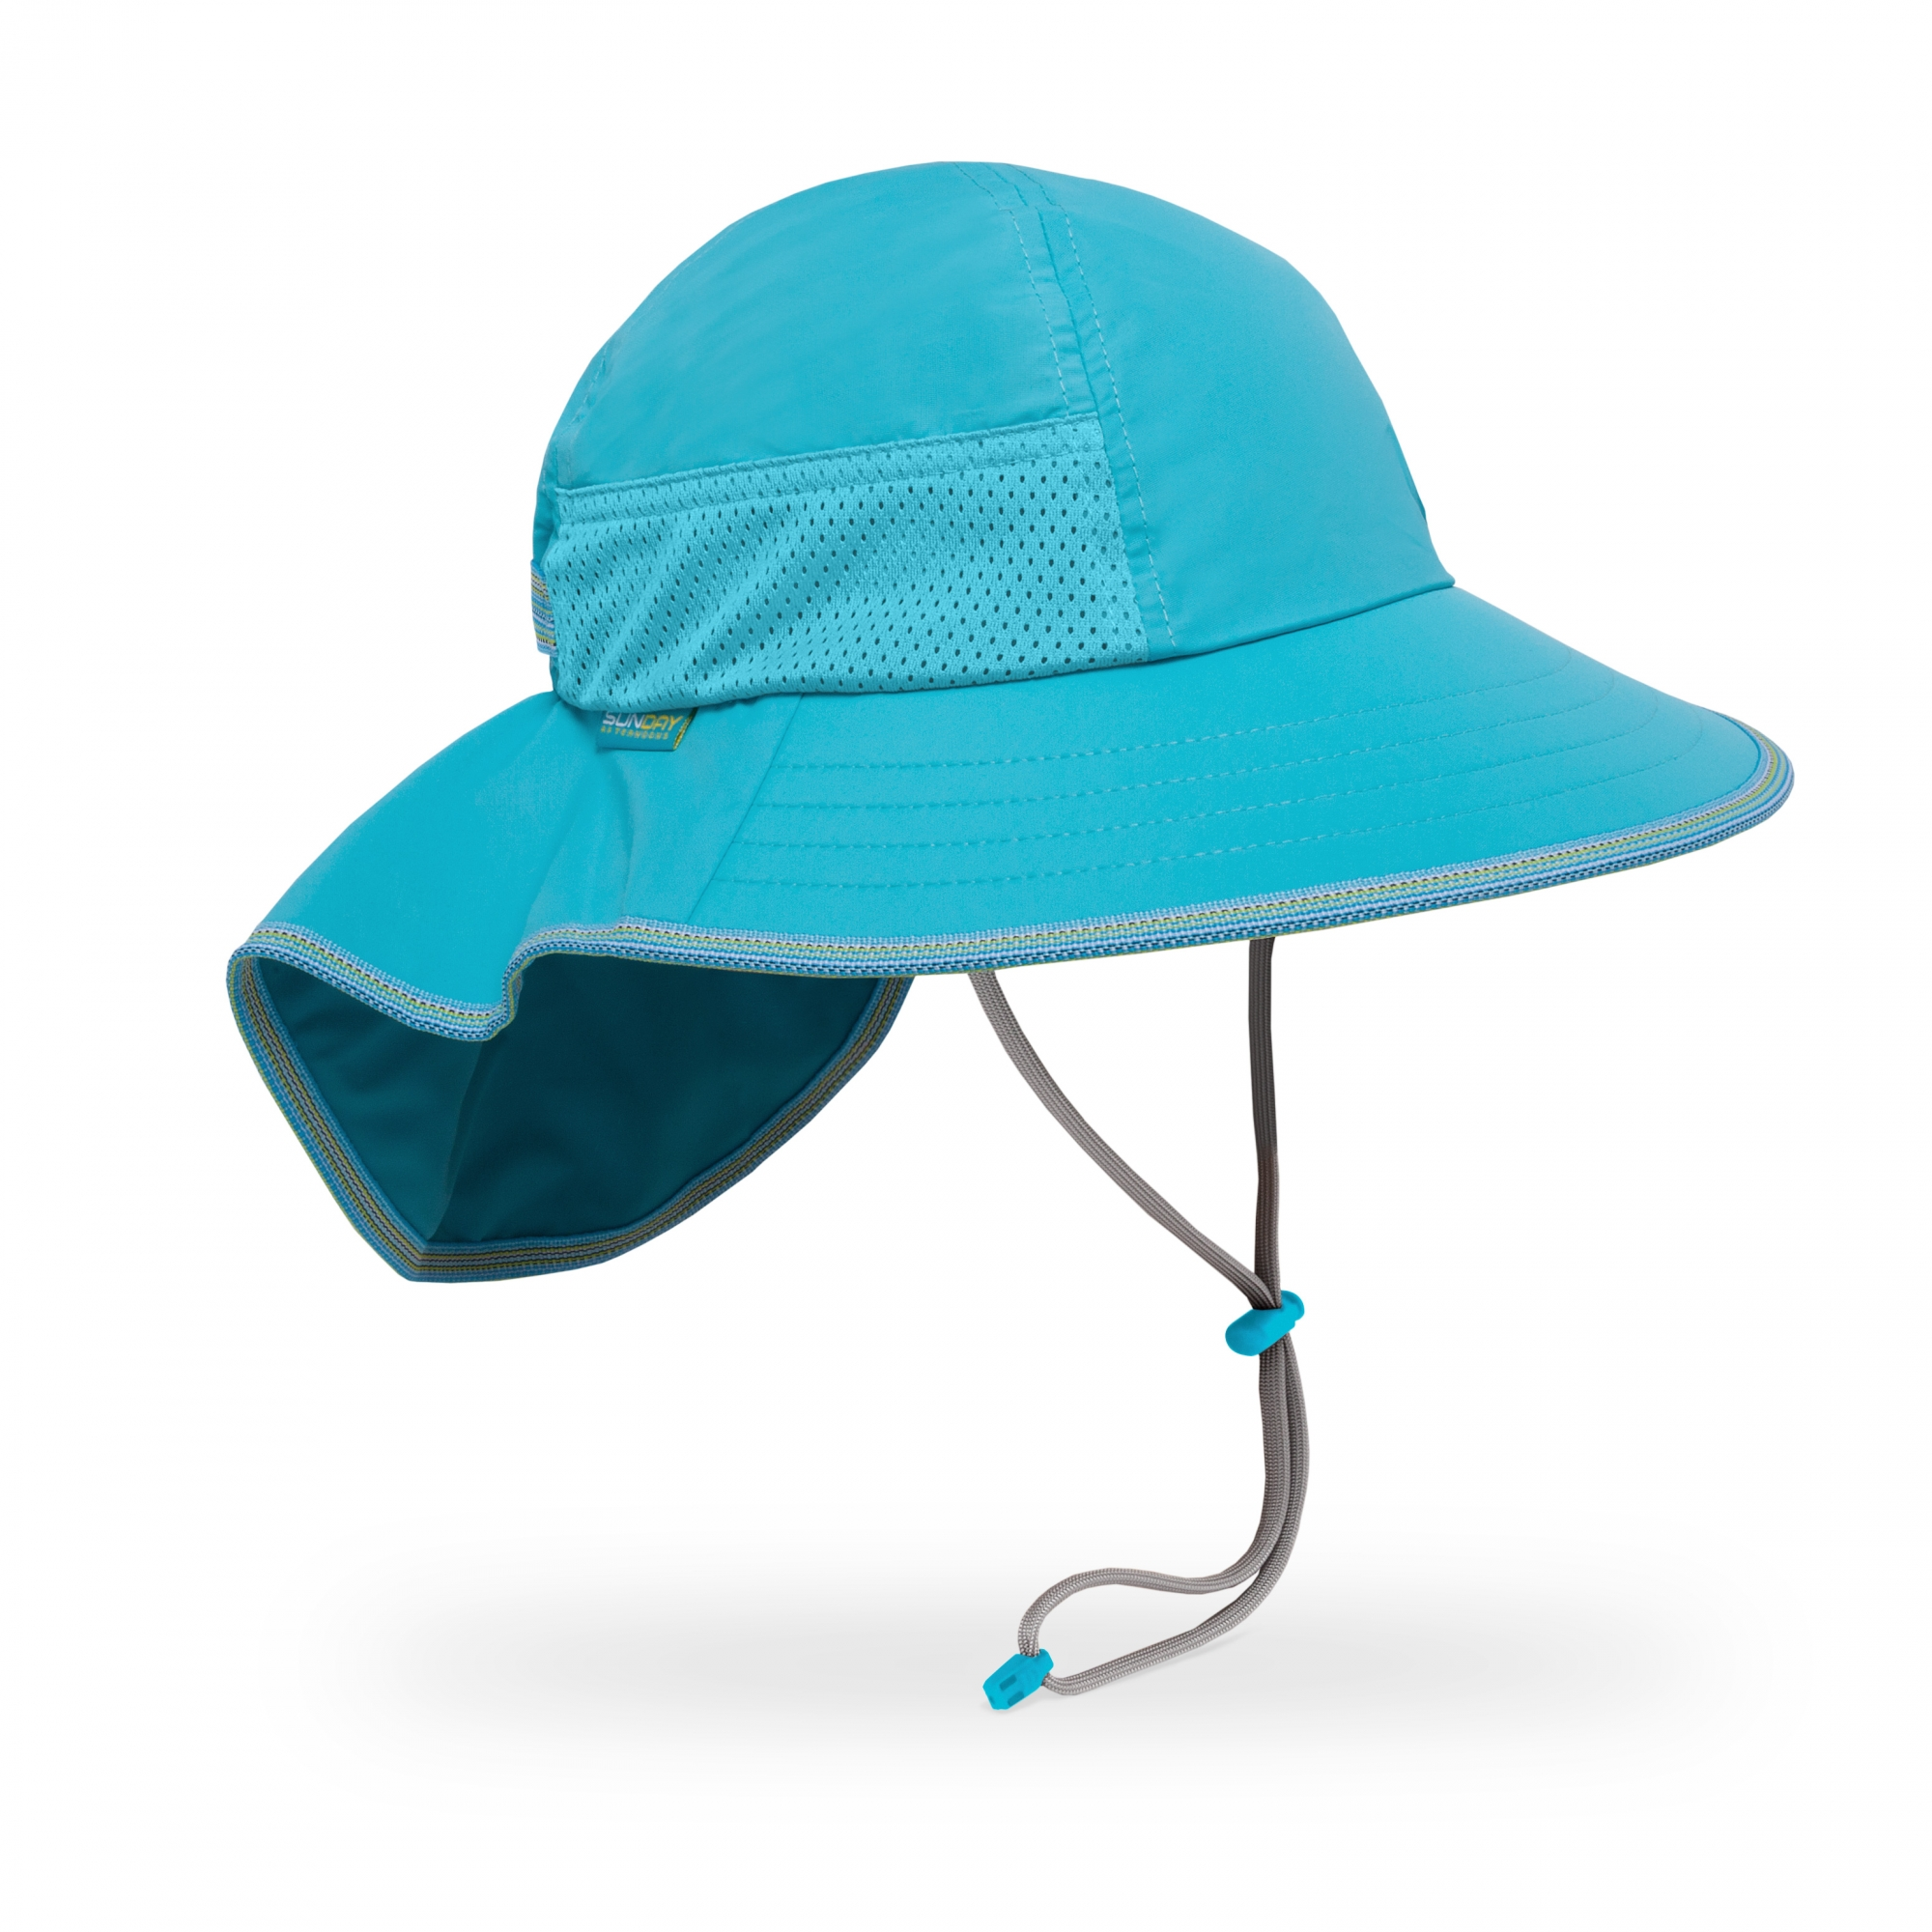 369cedc17 KIDS' PLAY HAT